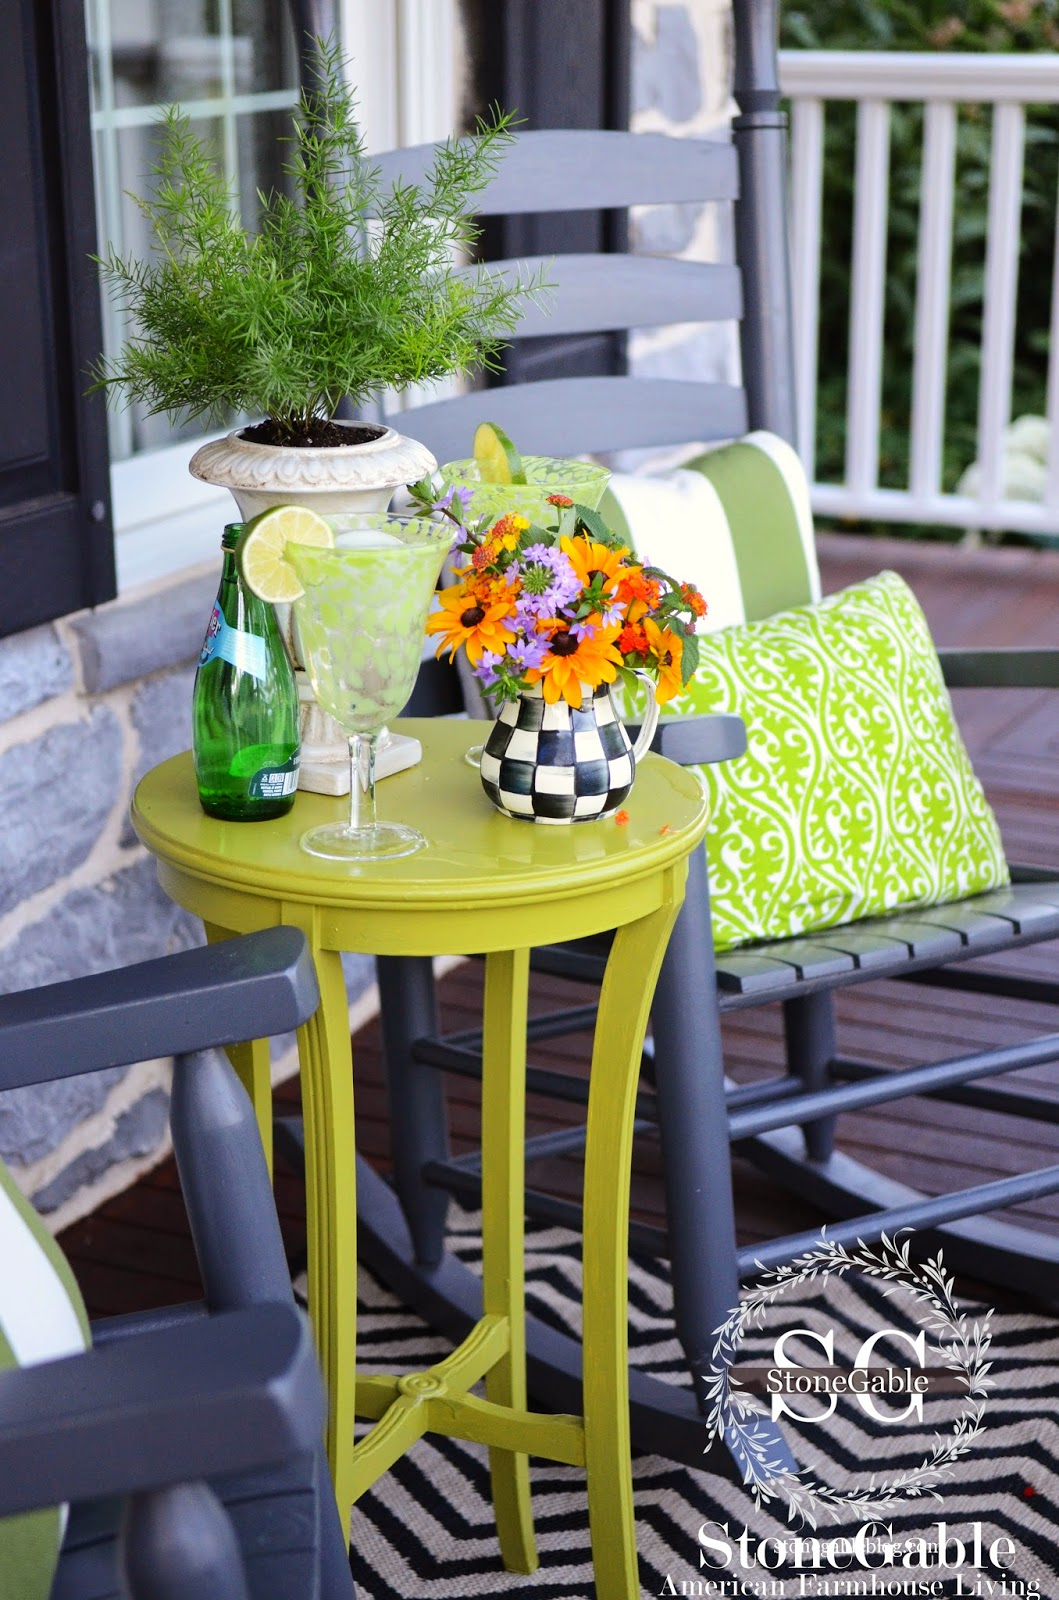 FRONT PORCH SITTING CREATING A STYLISH OUTDOOR SPACE